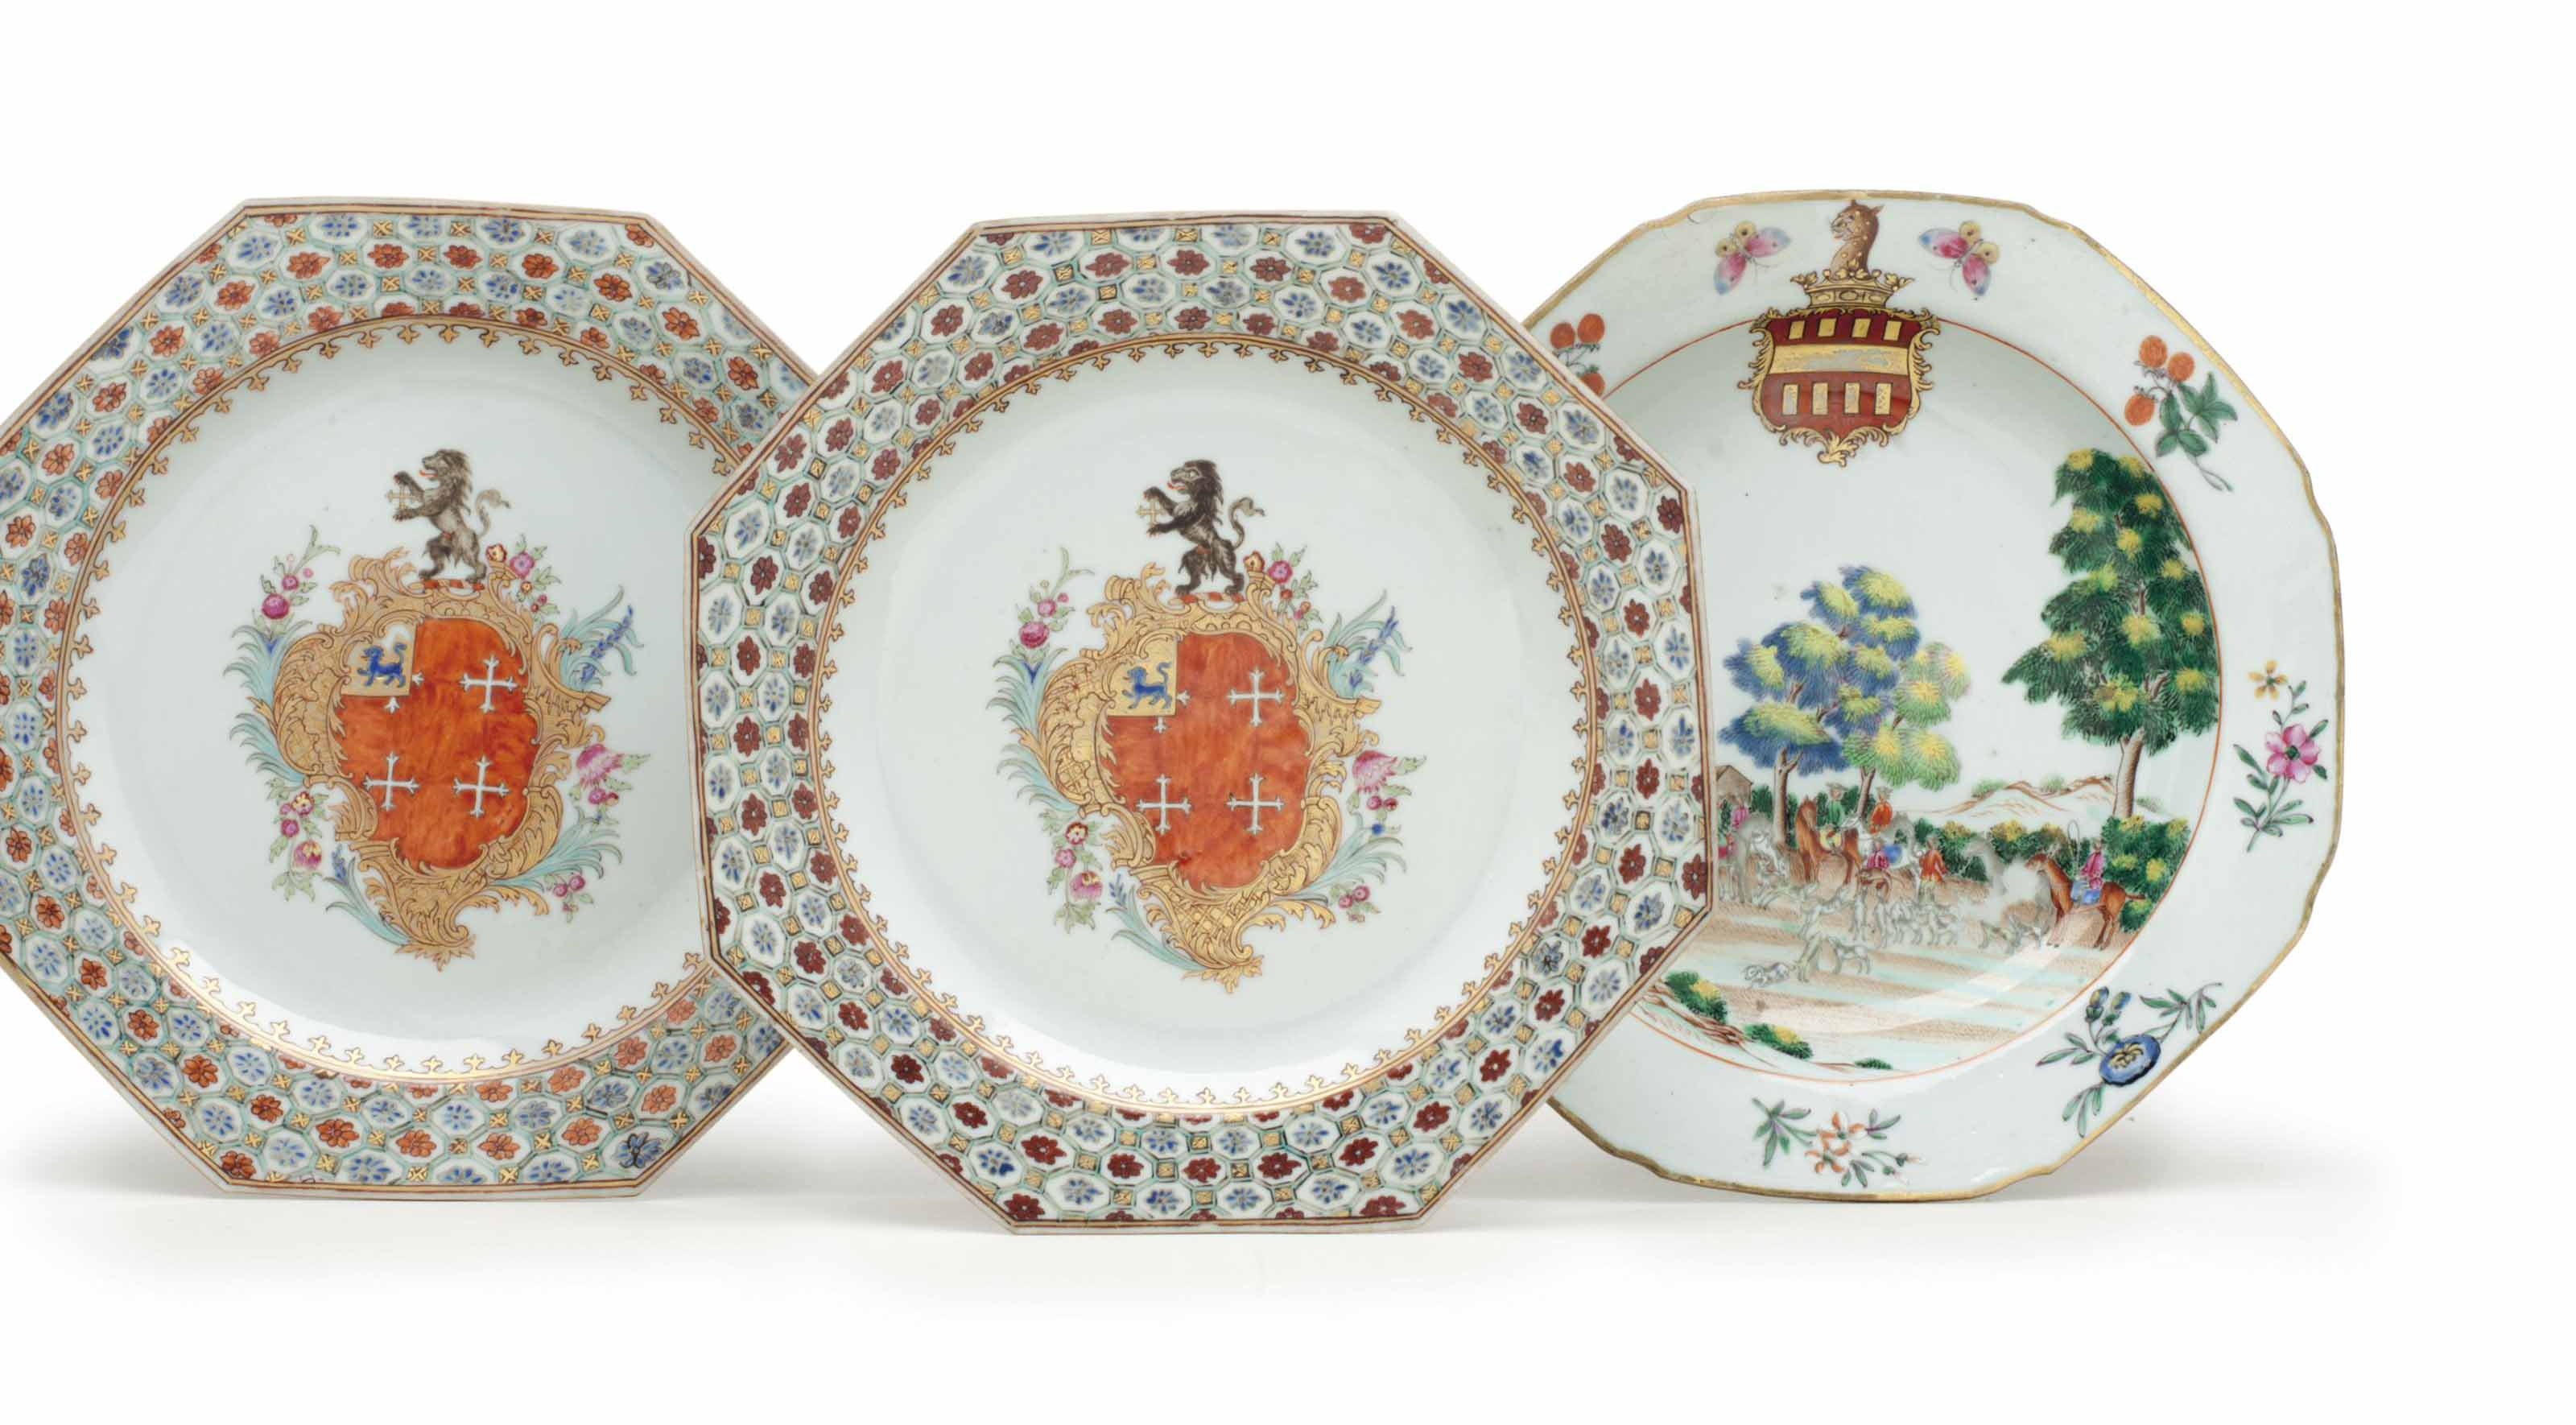 A PAIR OF ARMORIAL PLATES AND AN ARMORIAL PLATE